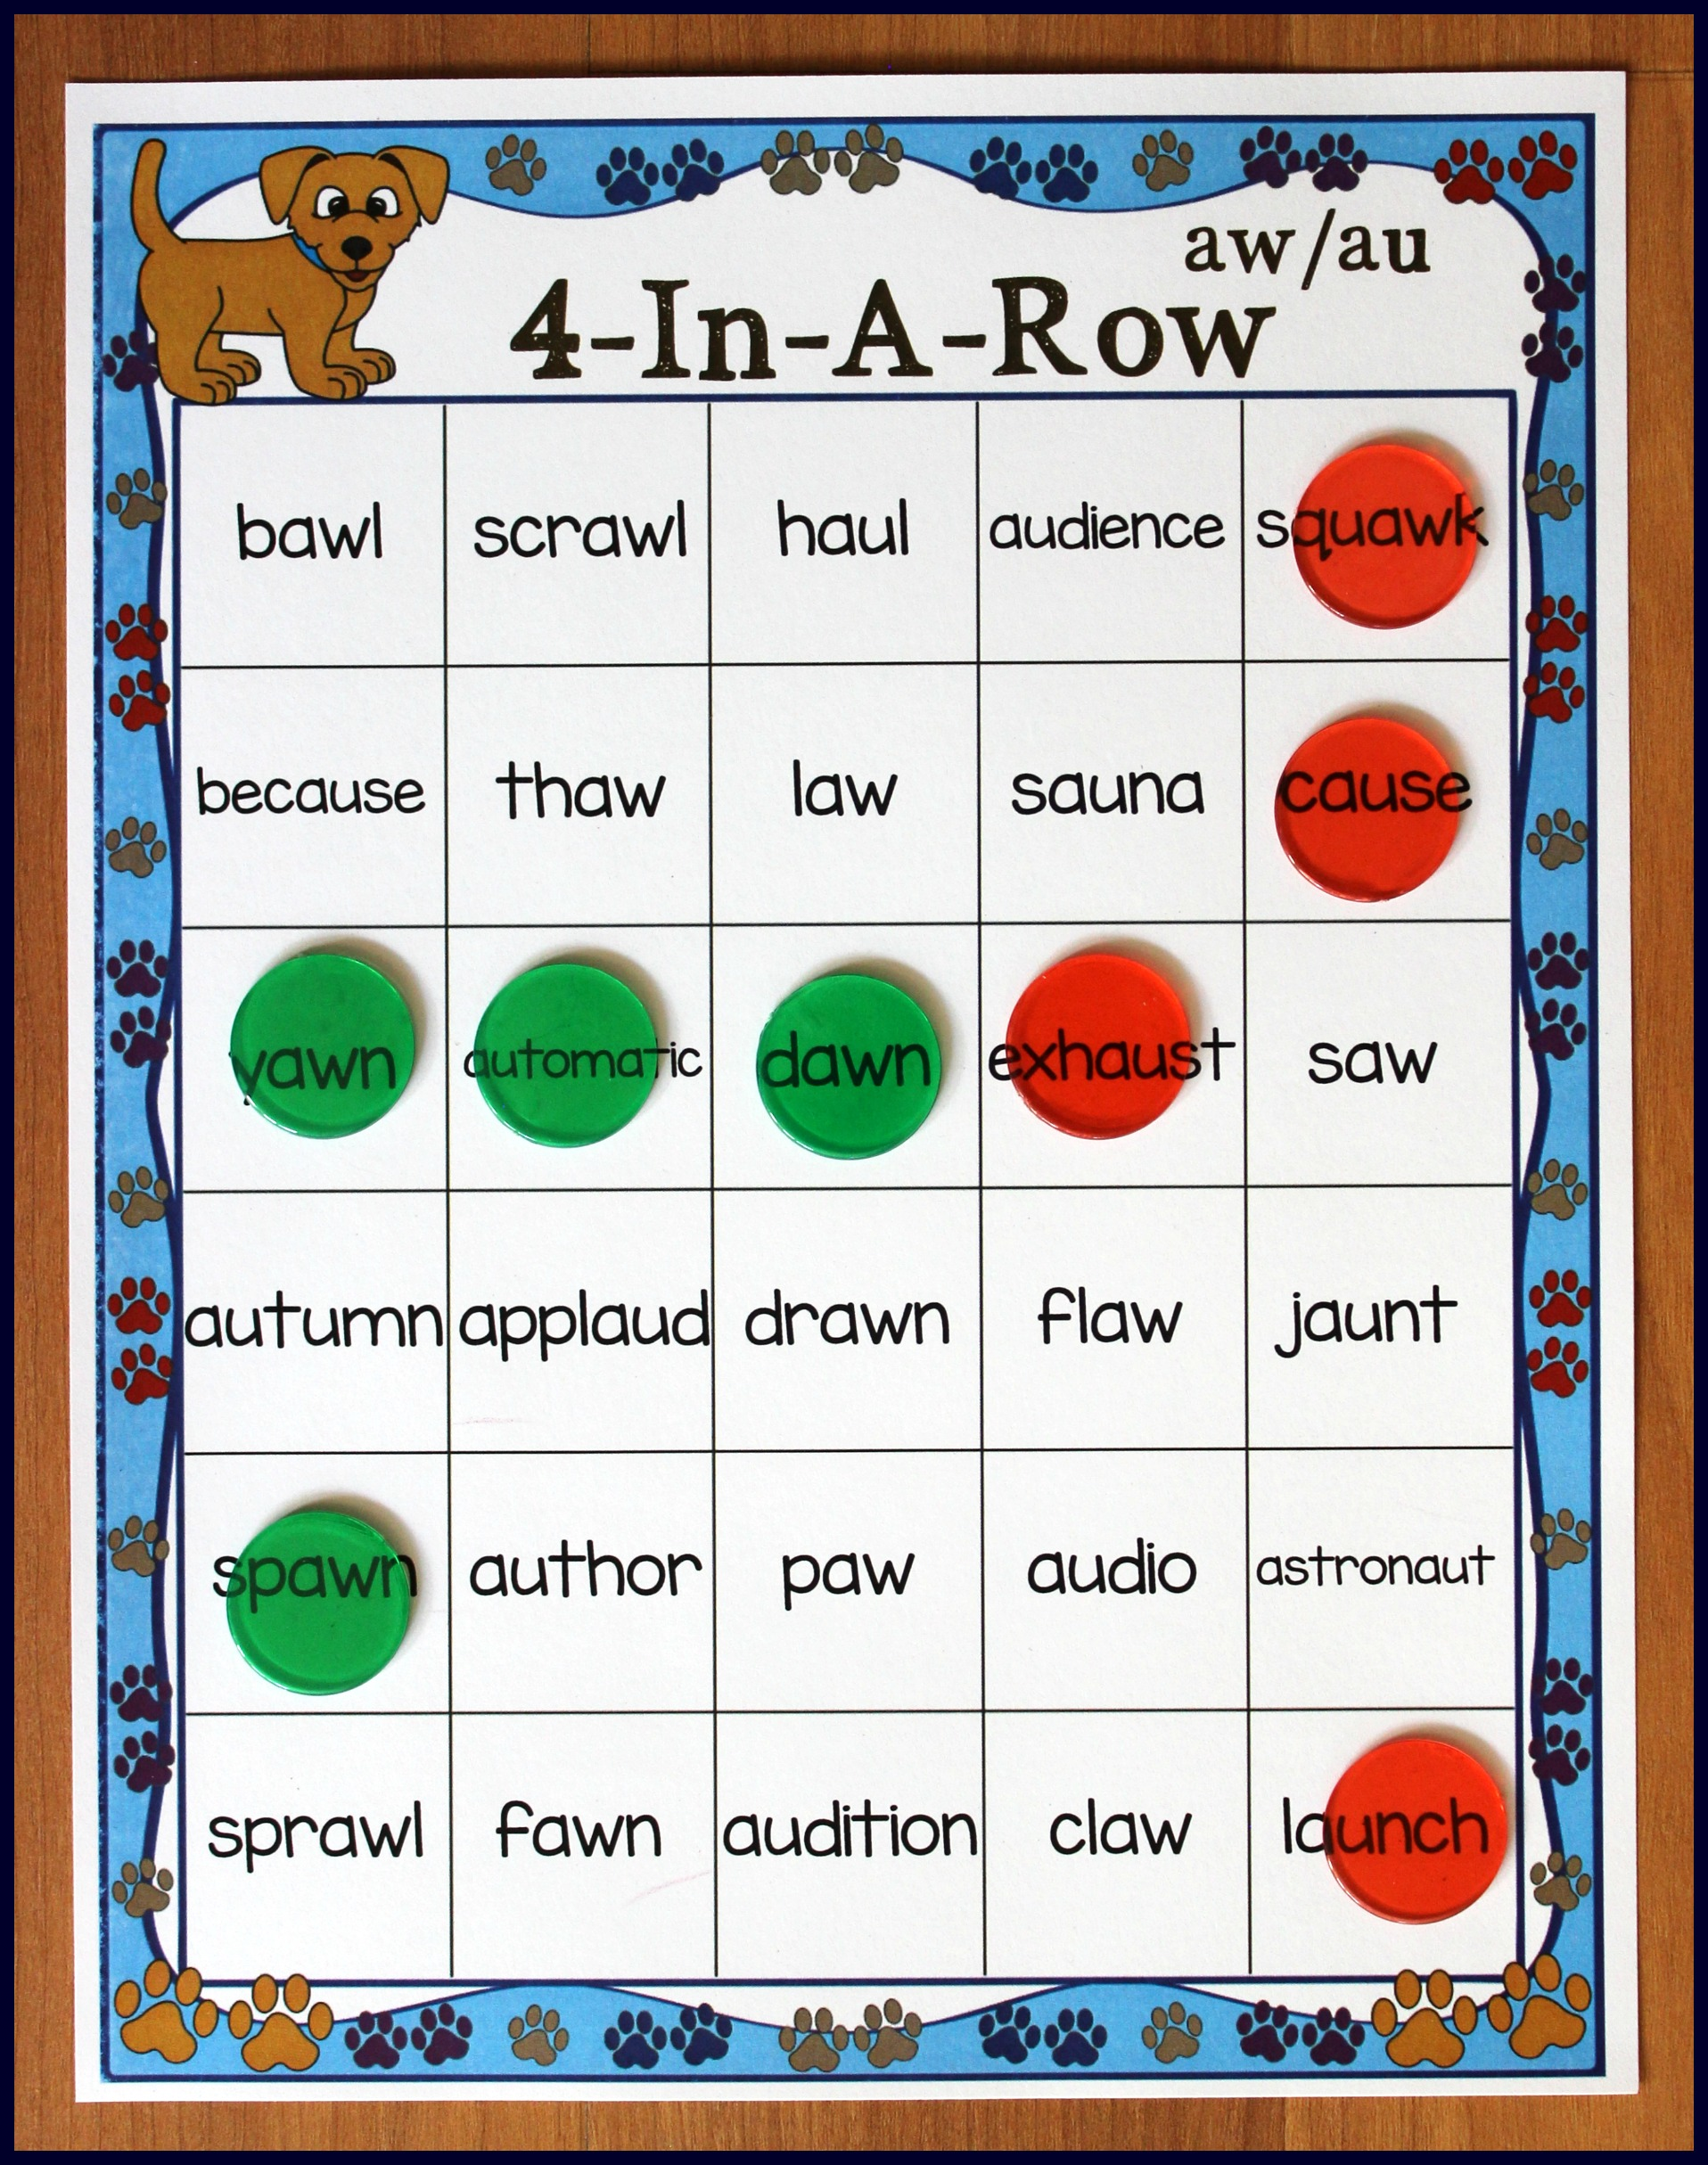 Worksheets Ir Words Phonics activities for teaching the auaw digraphs make take teach aw au phonics 4 in a row